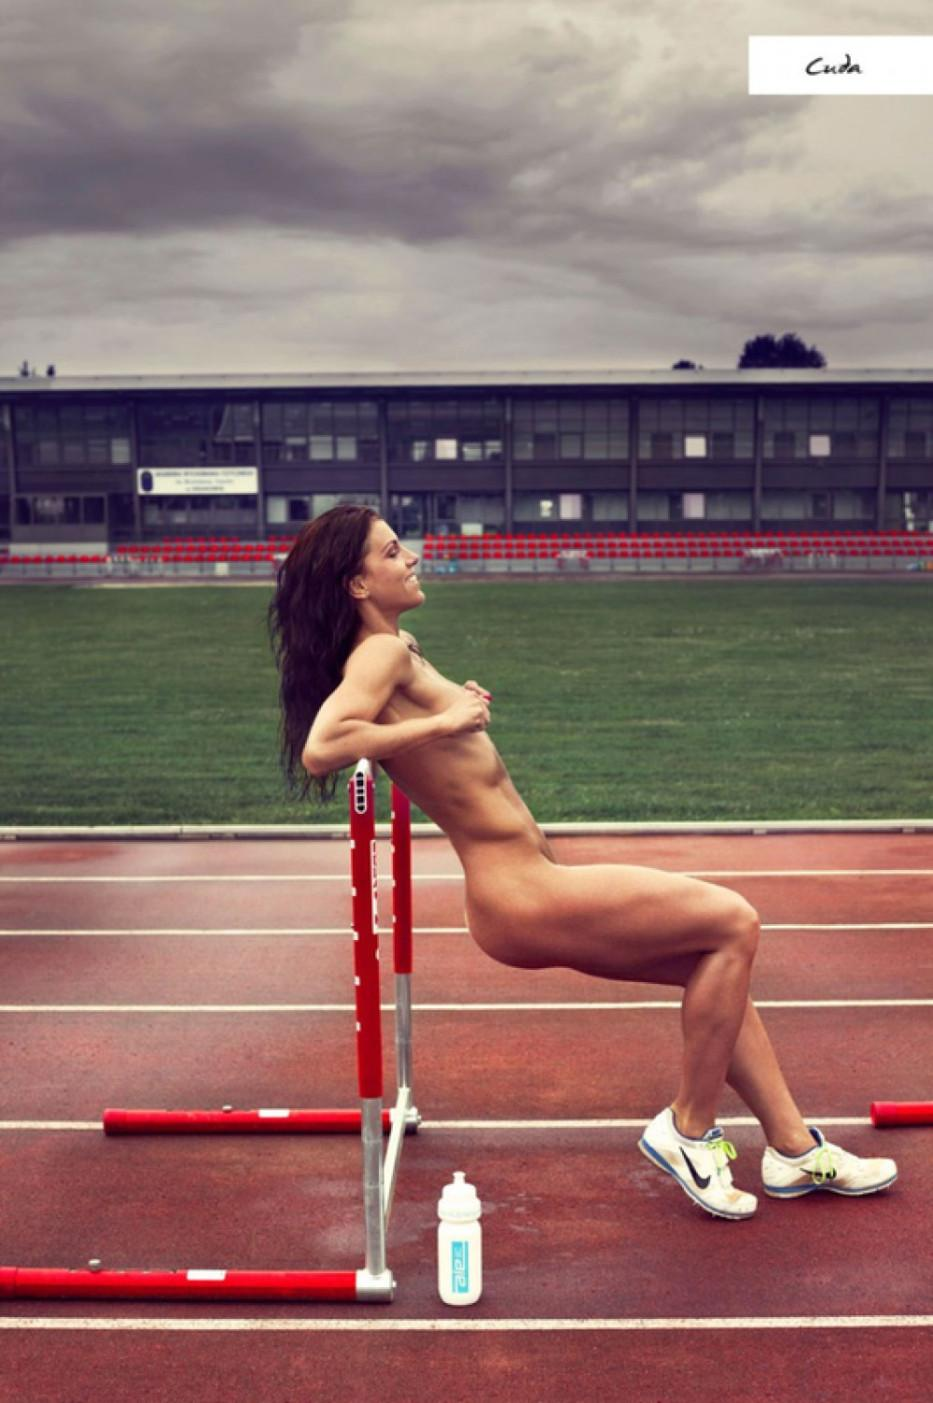 Charitable 2015 Calendar with naked Polish Sports Women  - 2